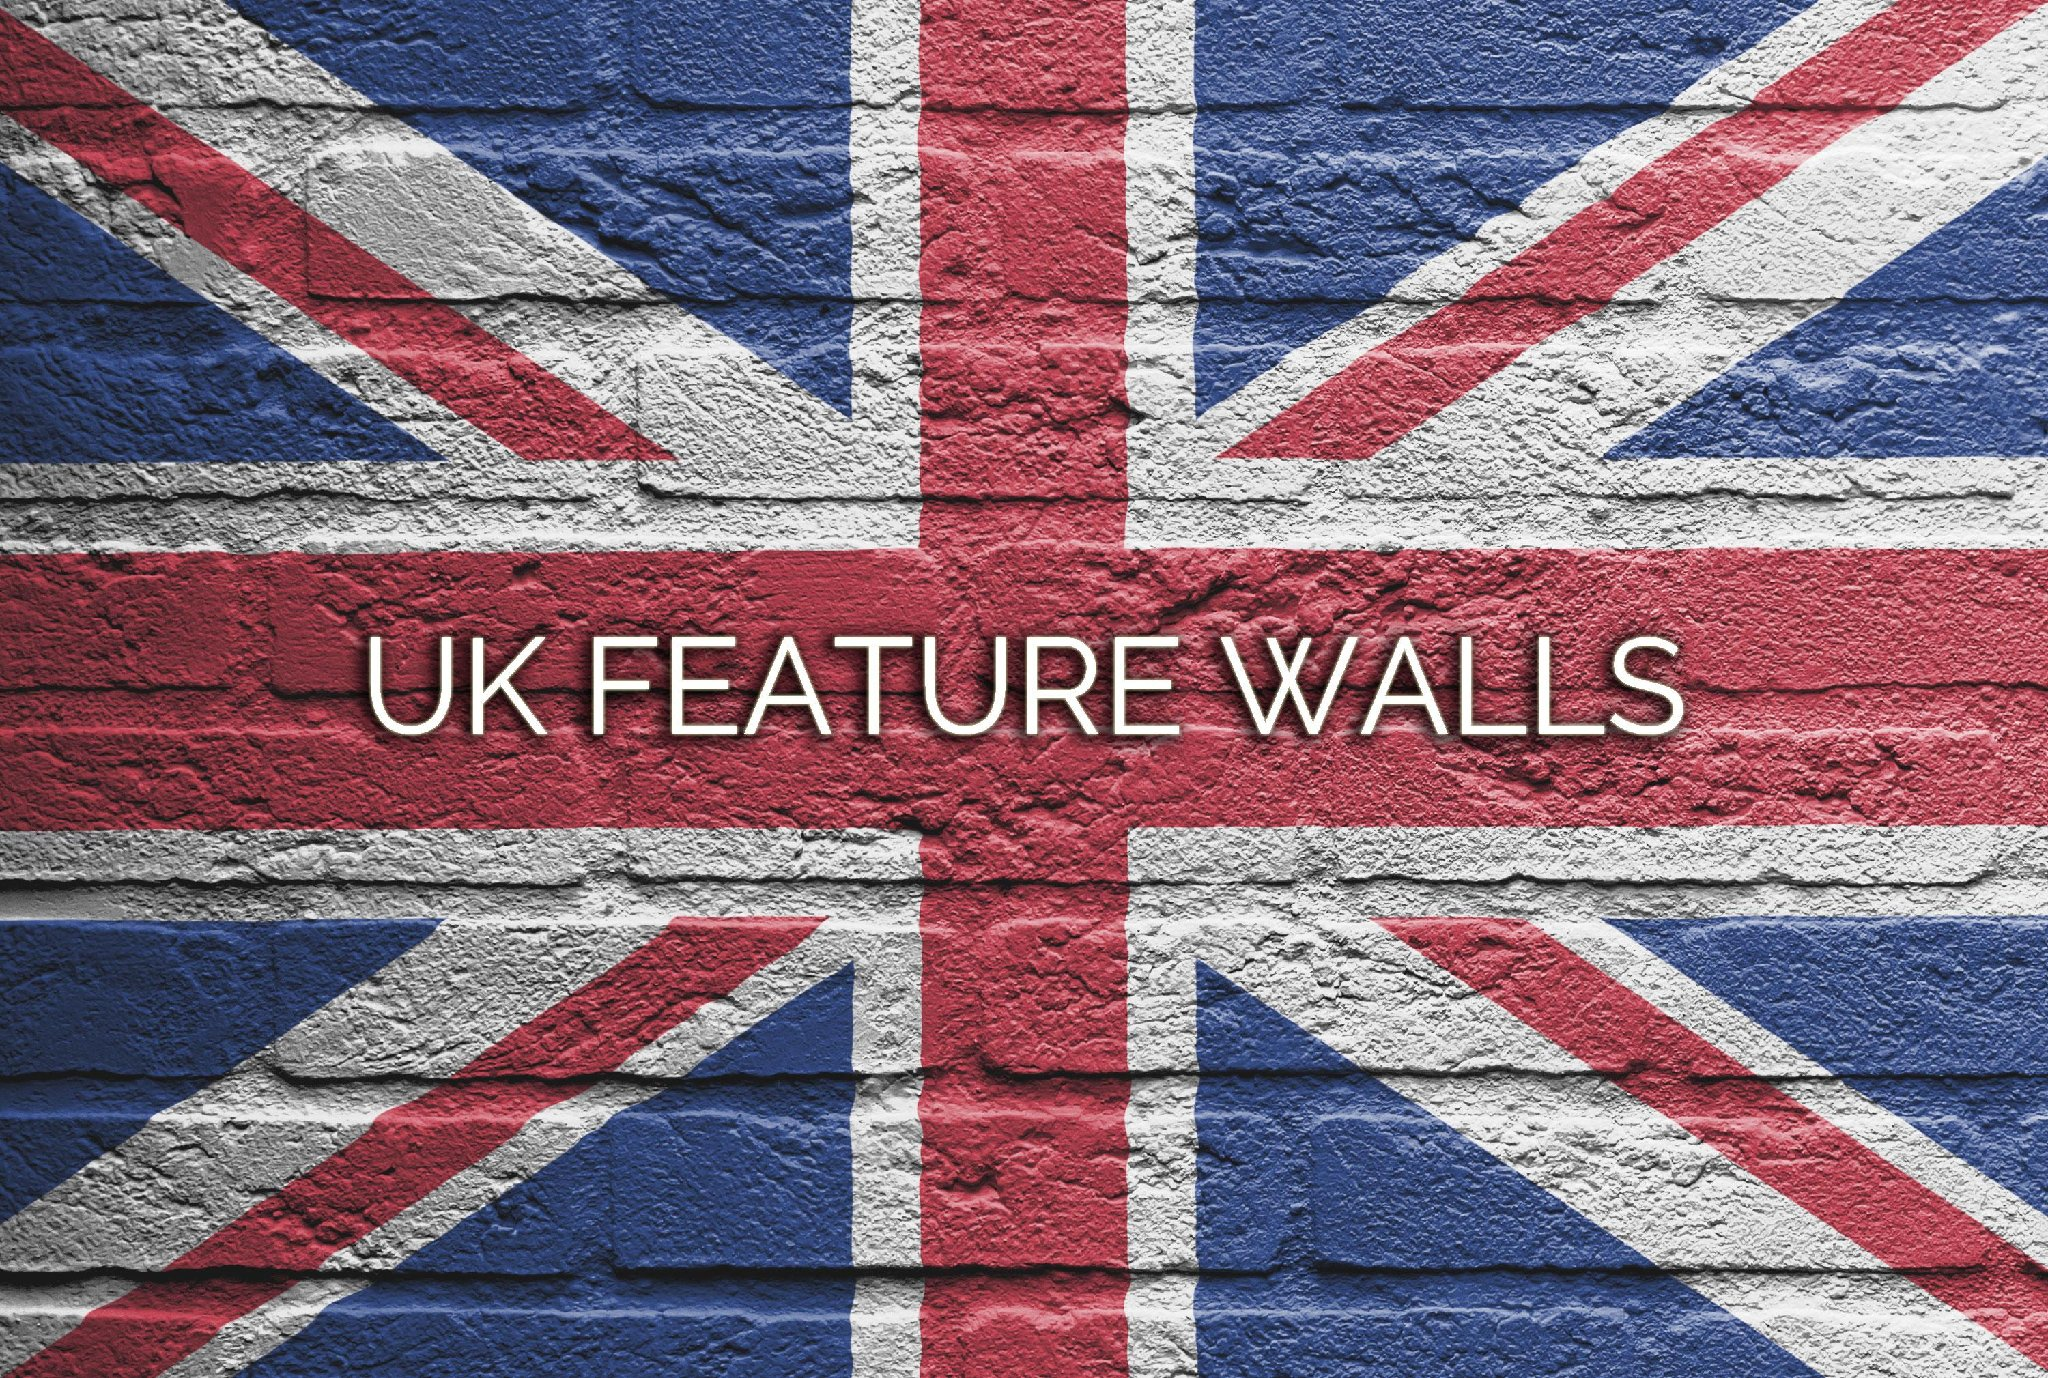 UK Feature Walls. The home of feature wall tiles